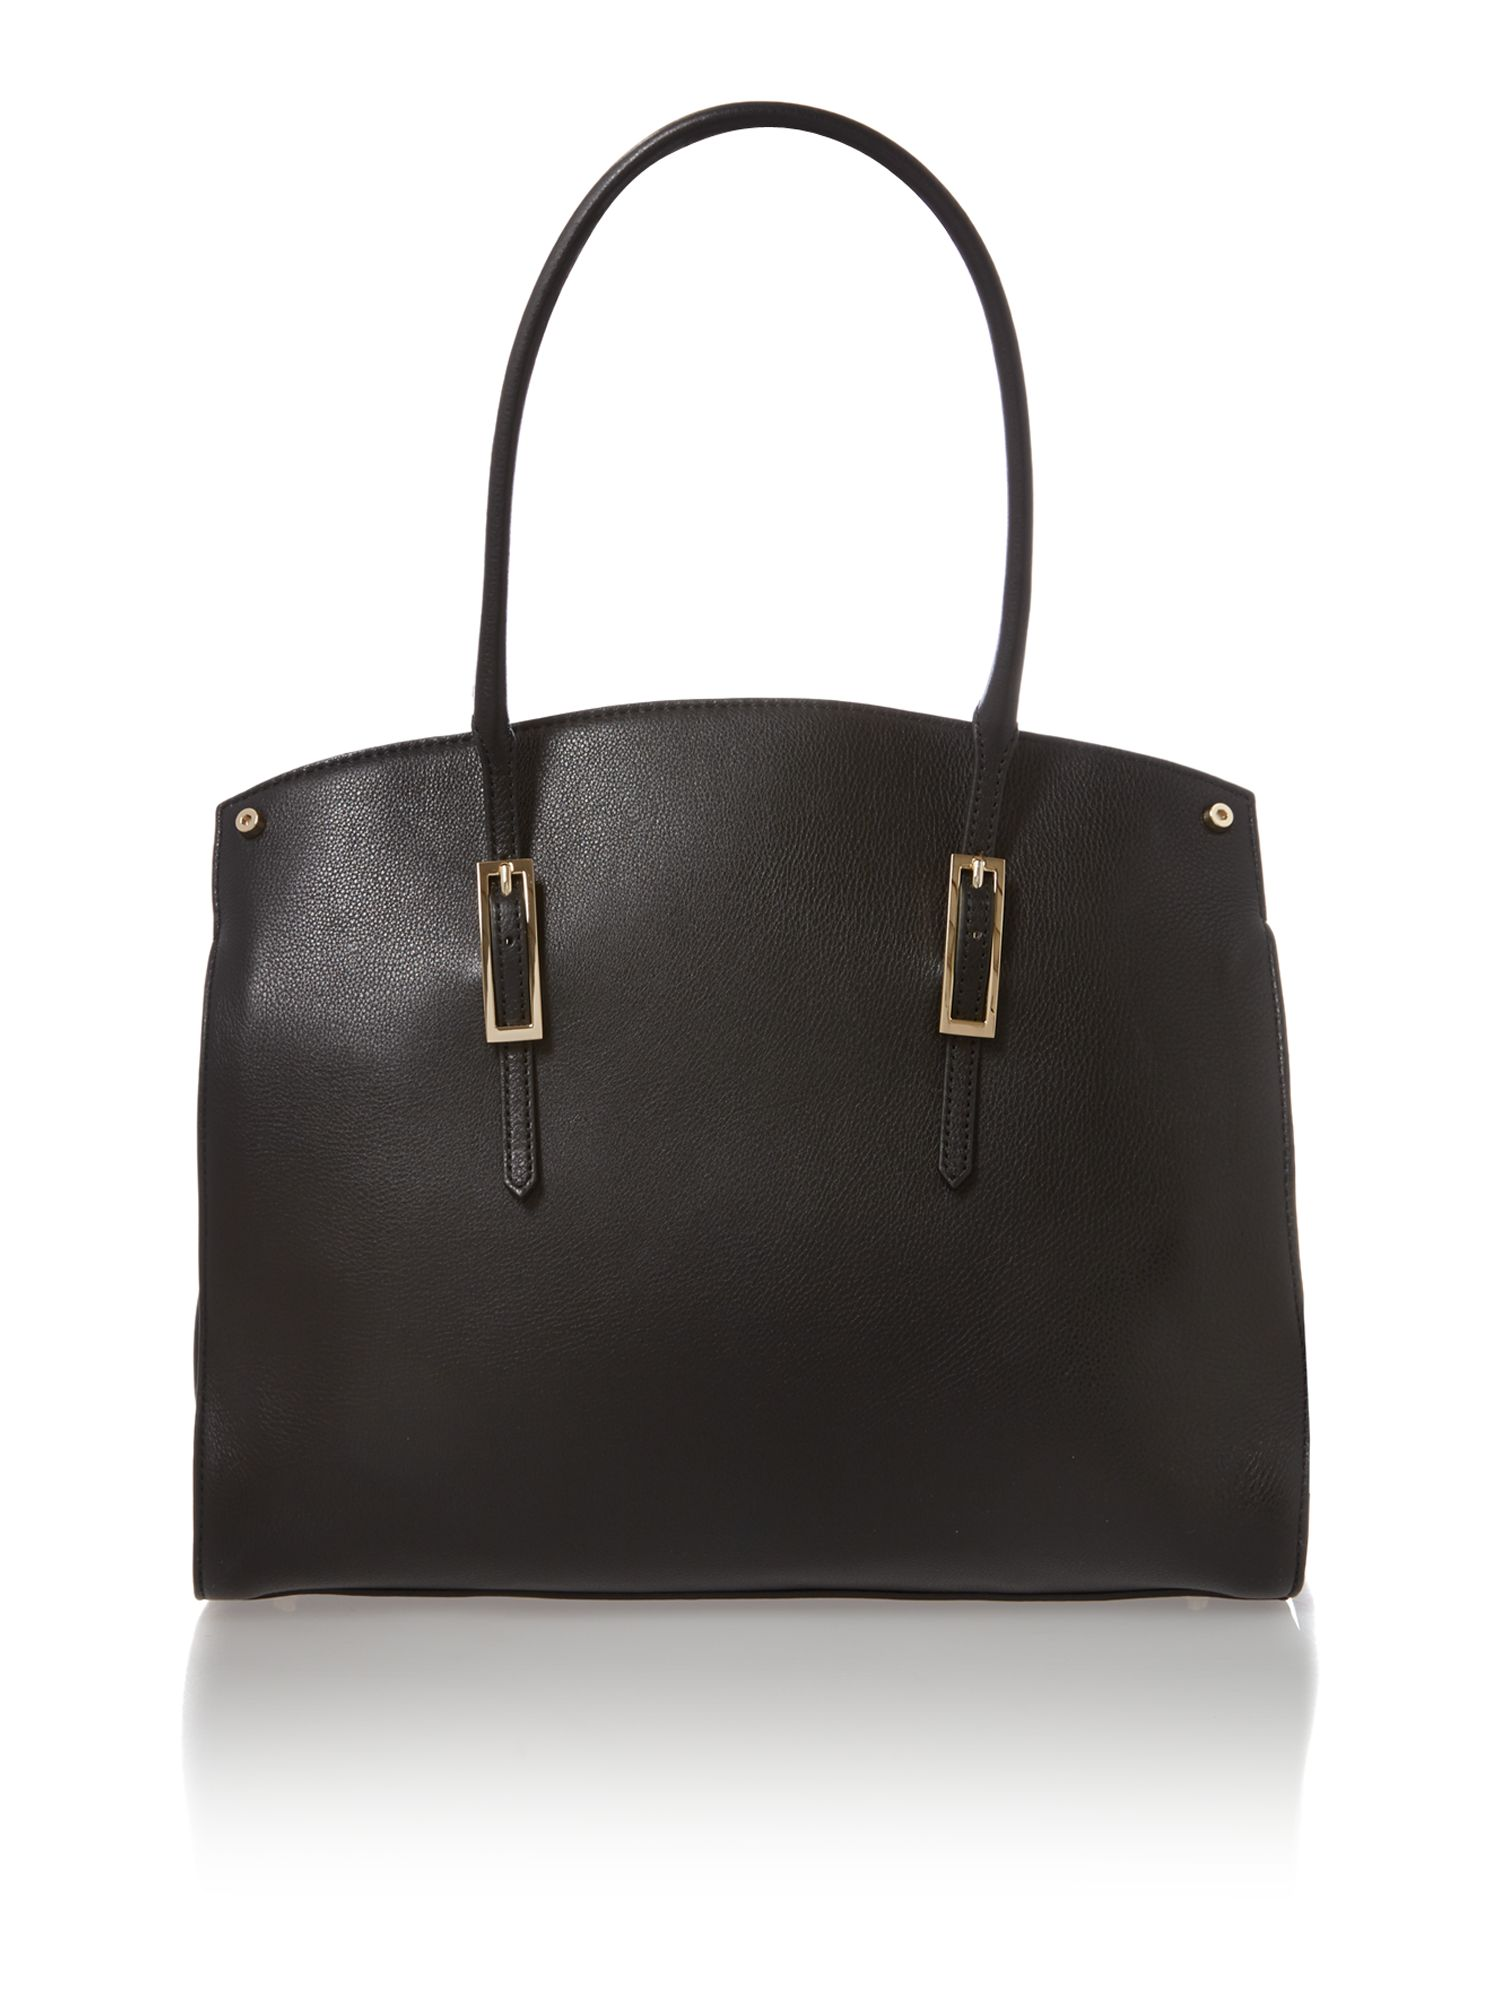 Celeste black tote bag